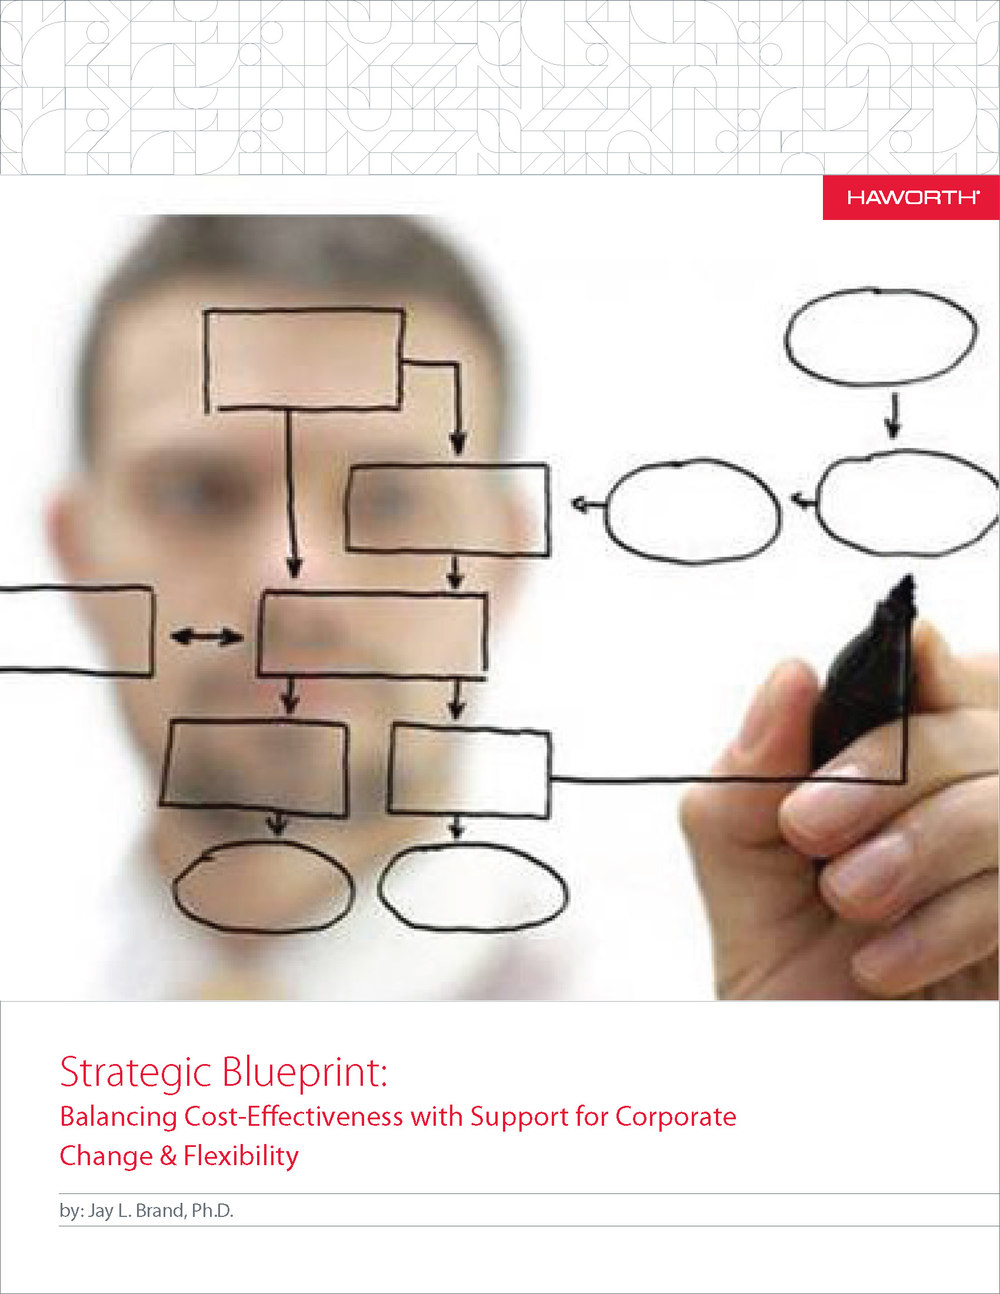 Strategic Blueprint: Balancing Cost-Effectiveness with Support for Corporate Change & Flexibilit  y:  courtesy of Haworth